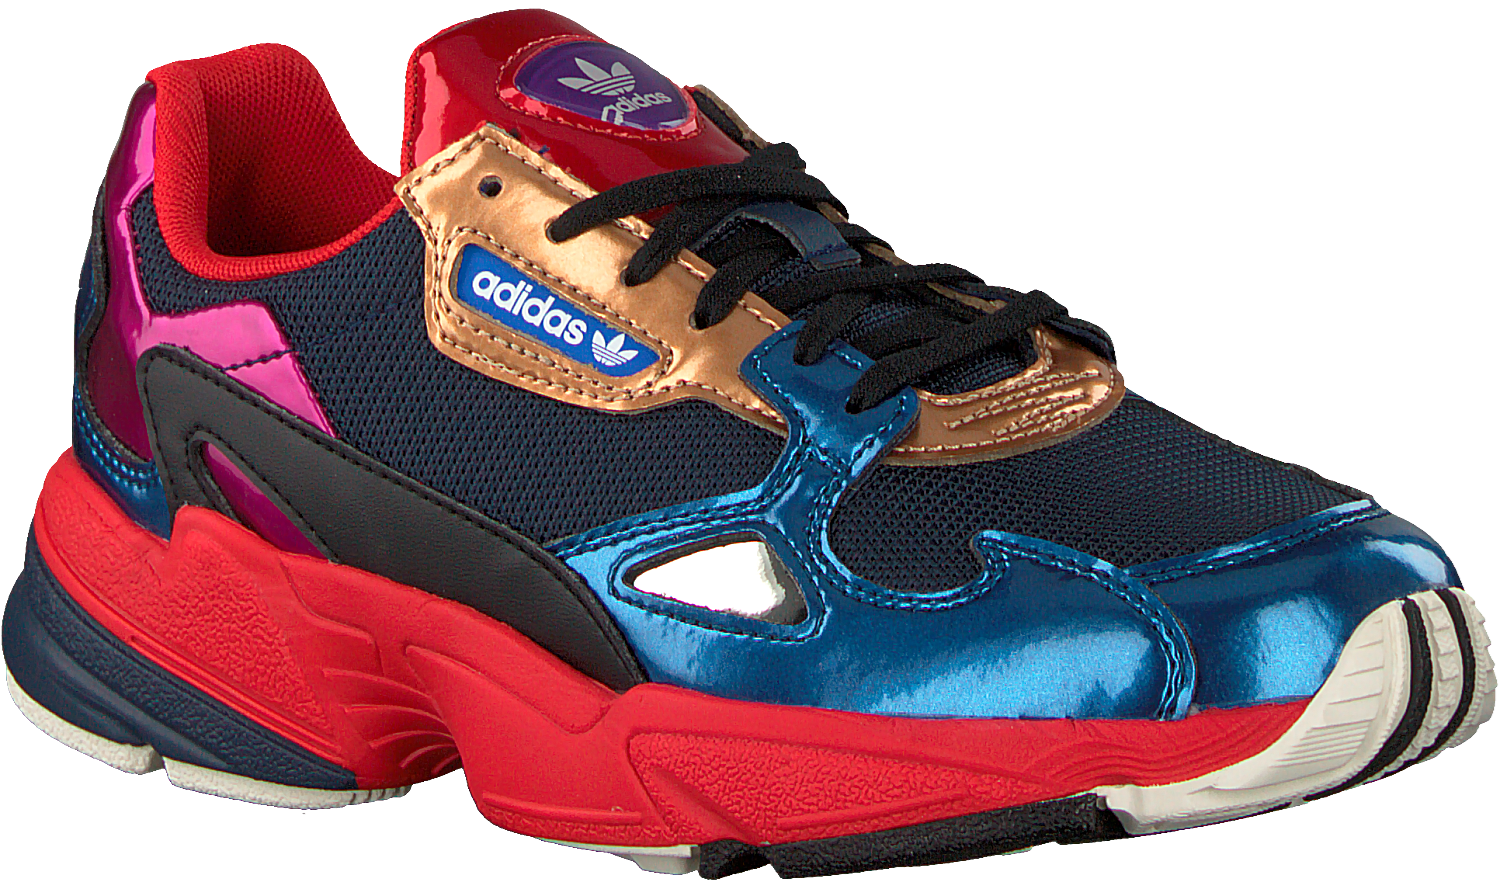 048a8715f69 Blauwe ADIDAS Sneakers FALCON WMN. ADIDAS. Previous